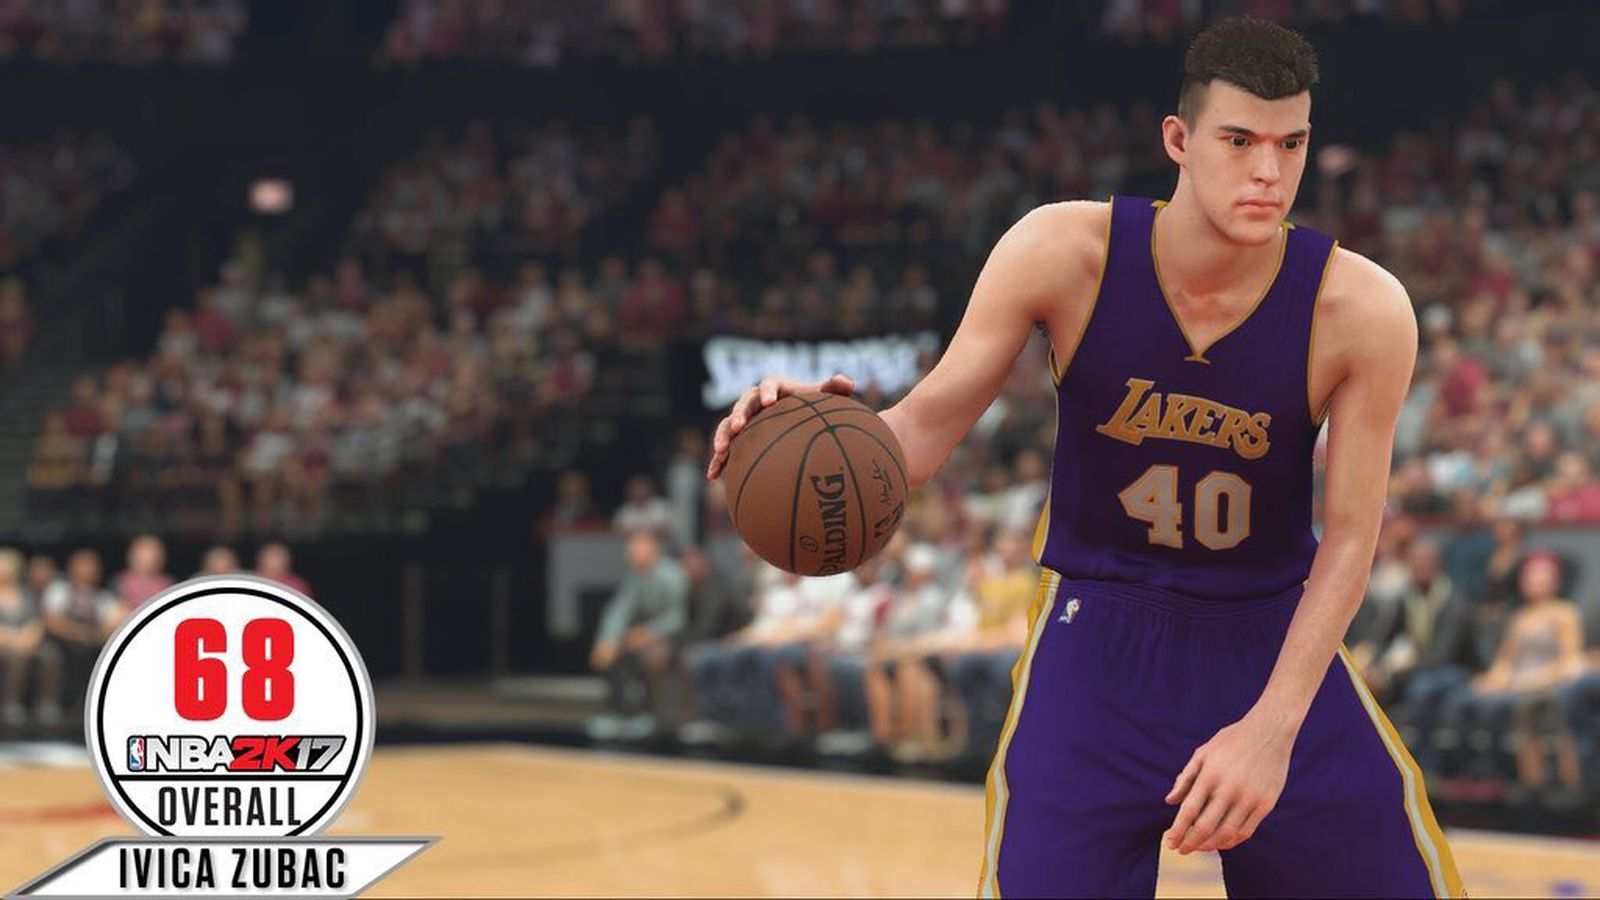 Ivica Zubac has finally been given his 2K rating